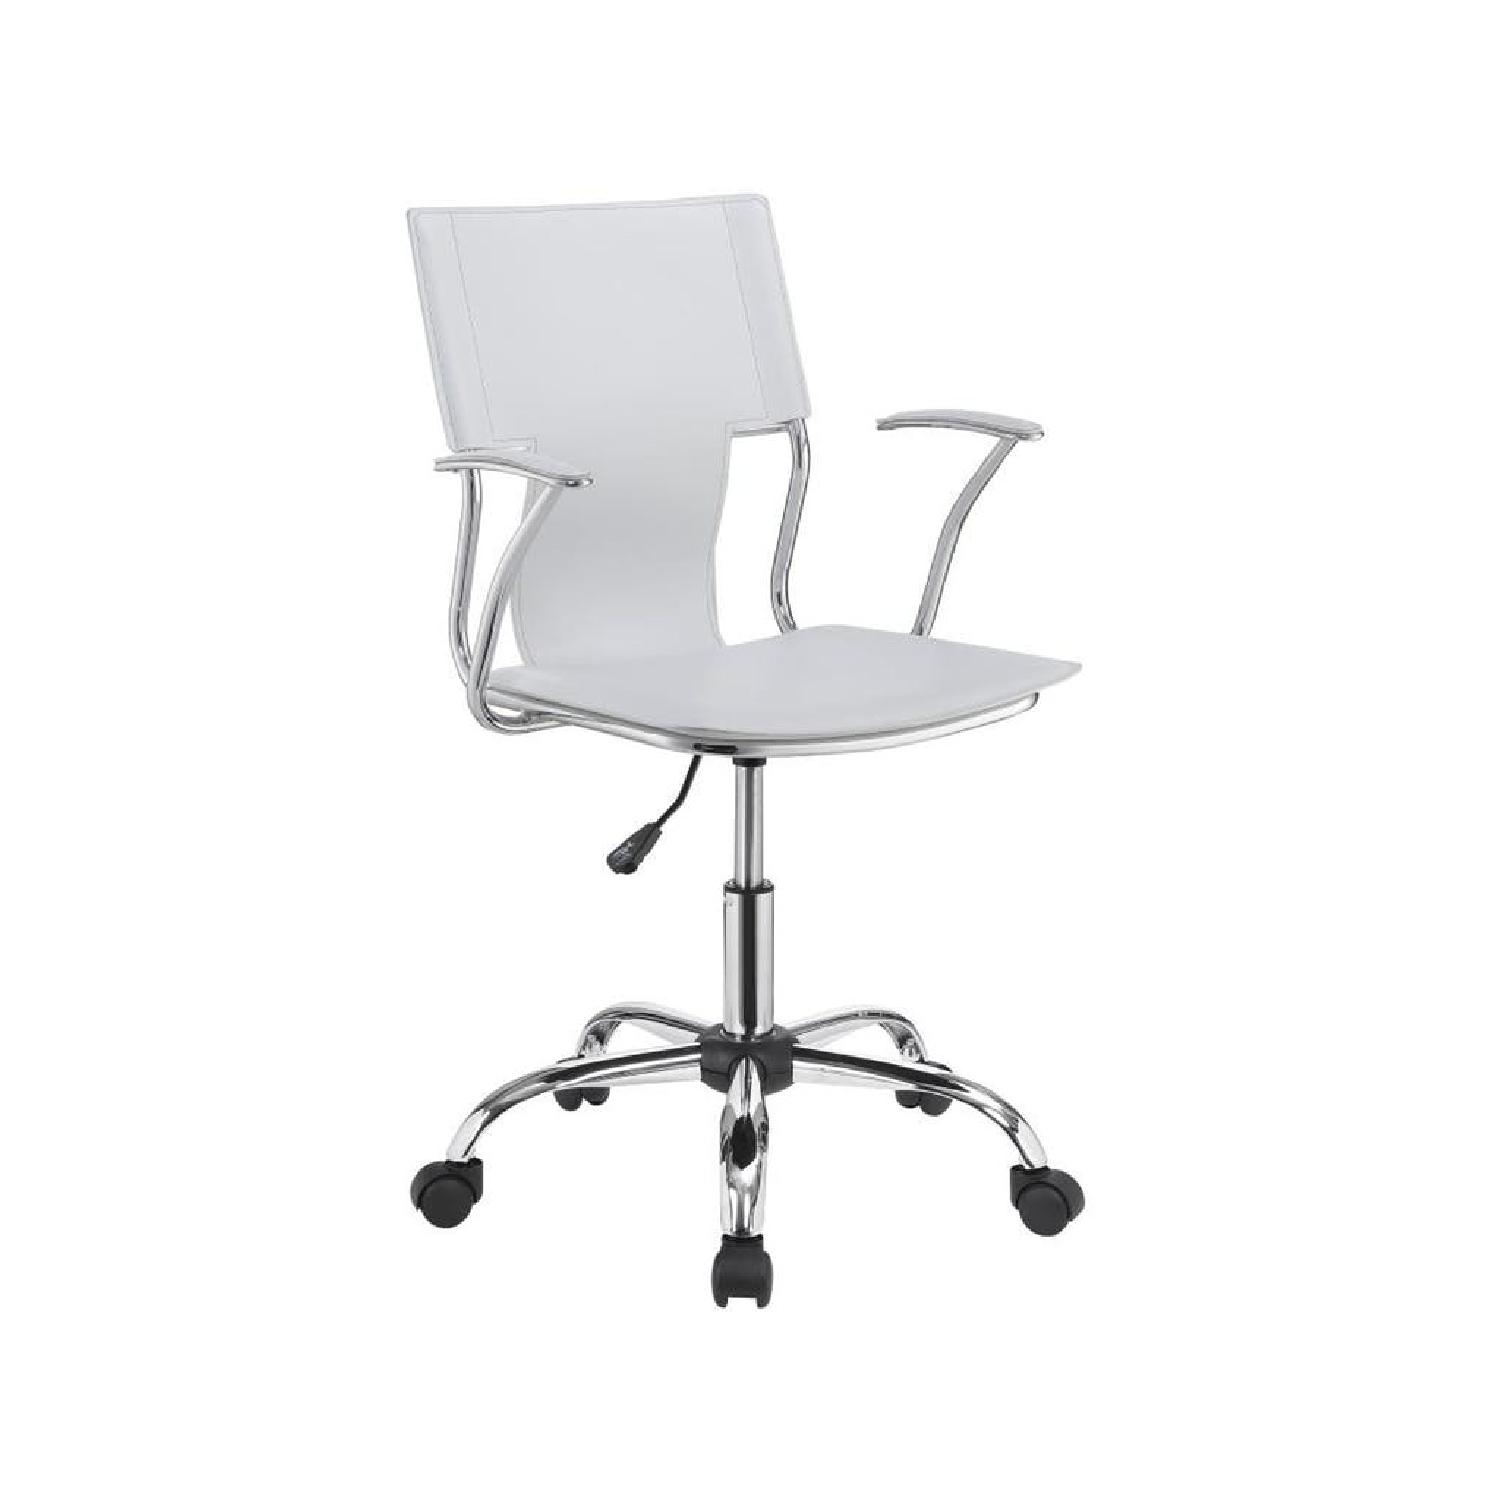 White Leatherette Office Chair w/ Chrome Metal Base